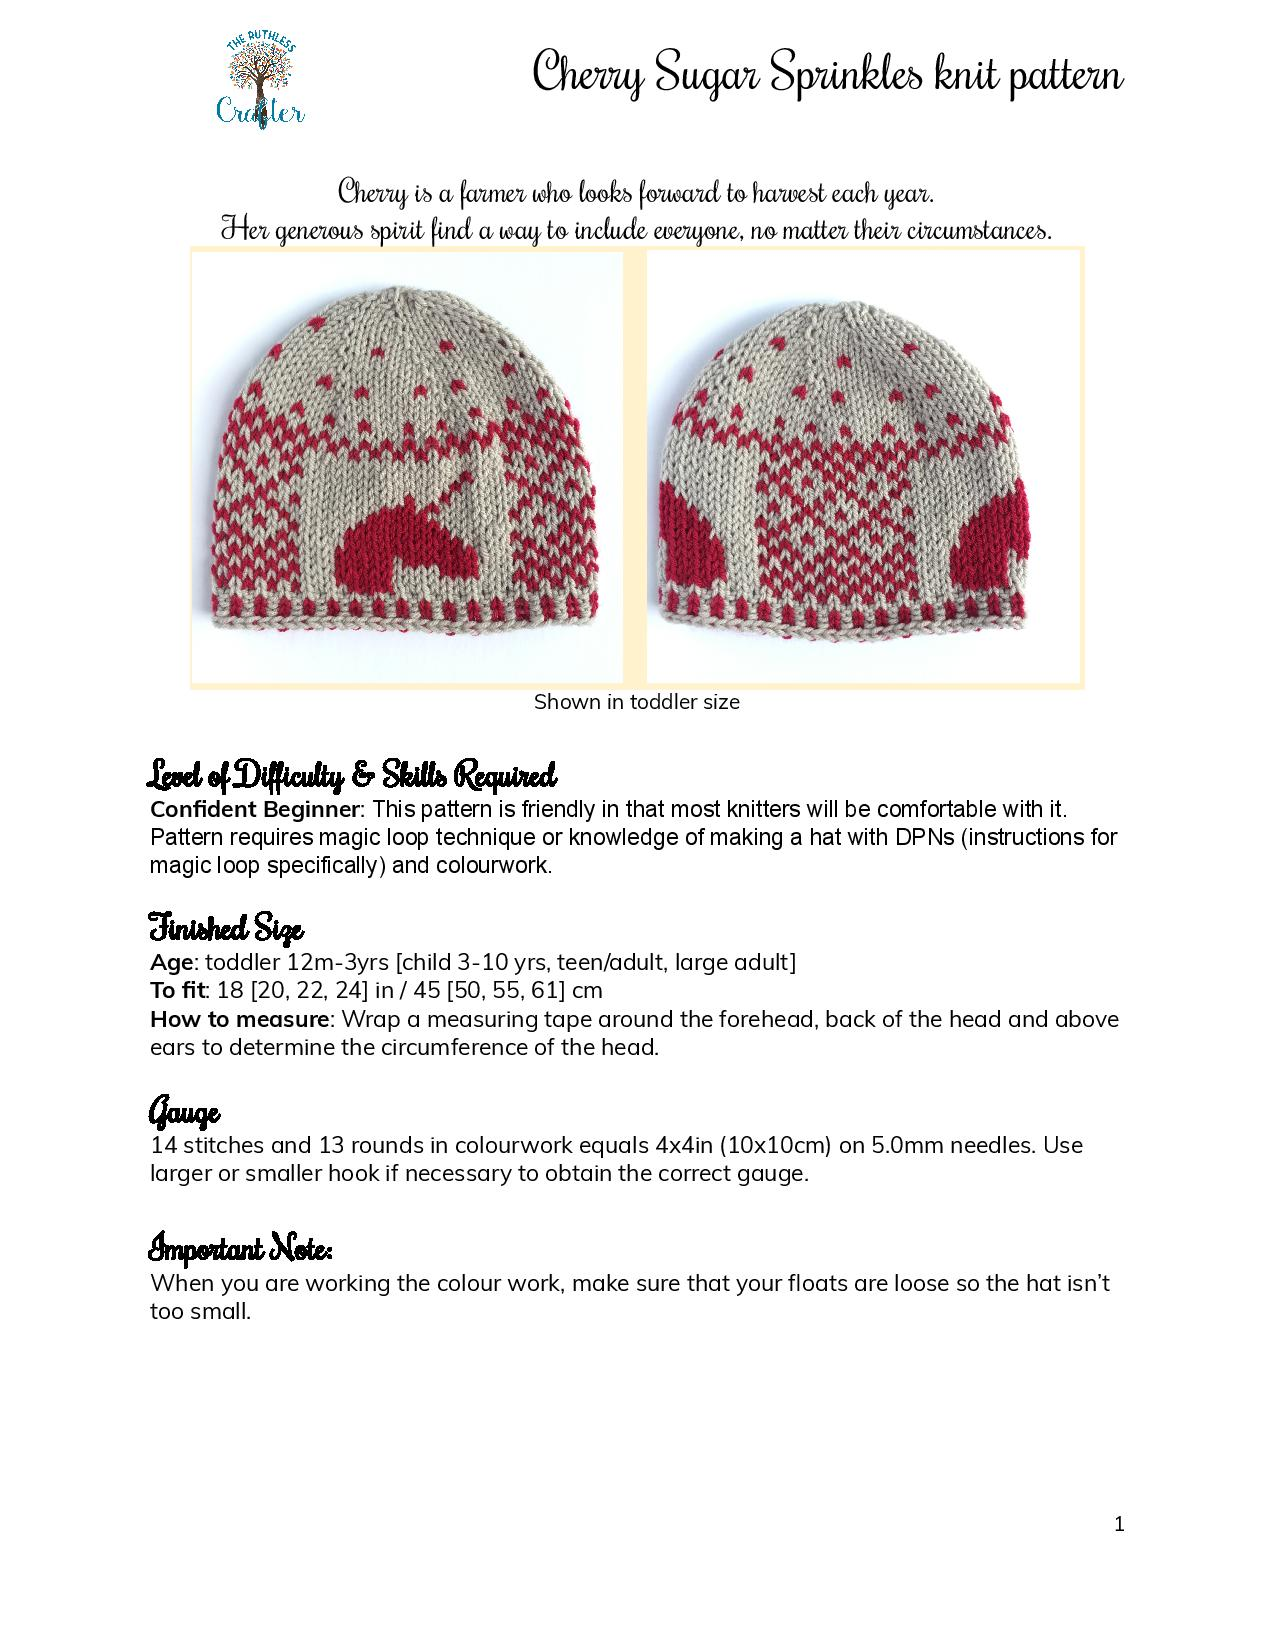 Cherry Sugar Sprinkles – knit pattern page 1